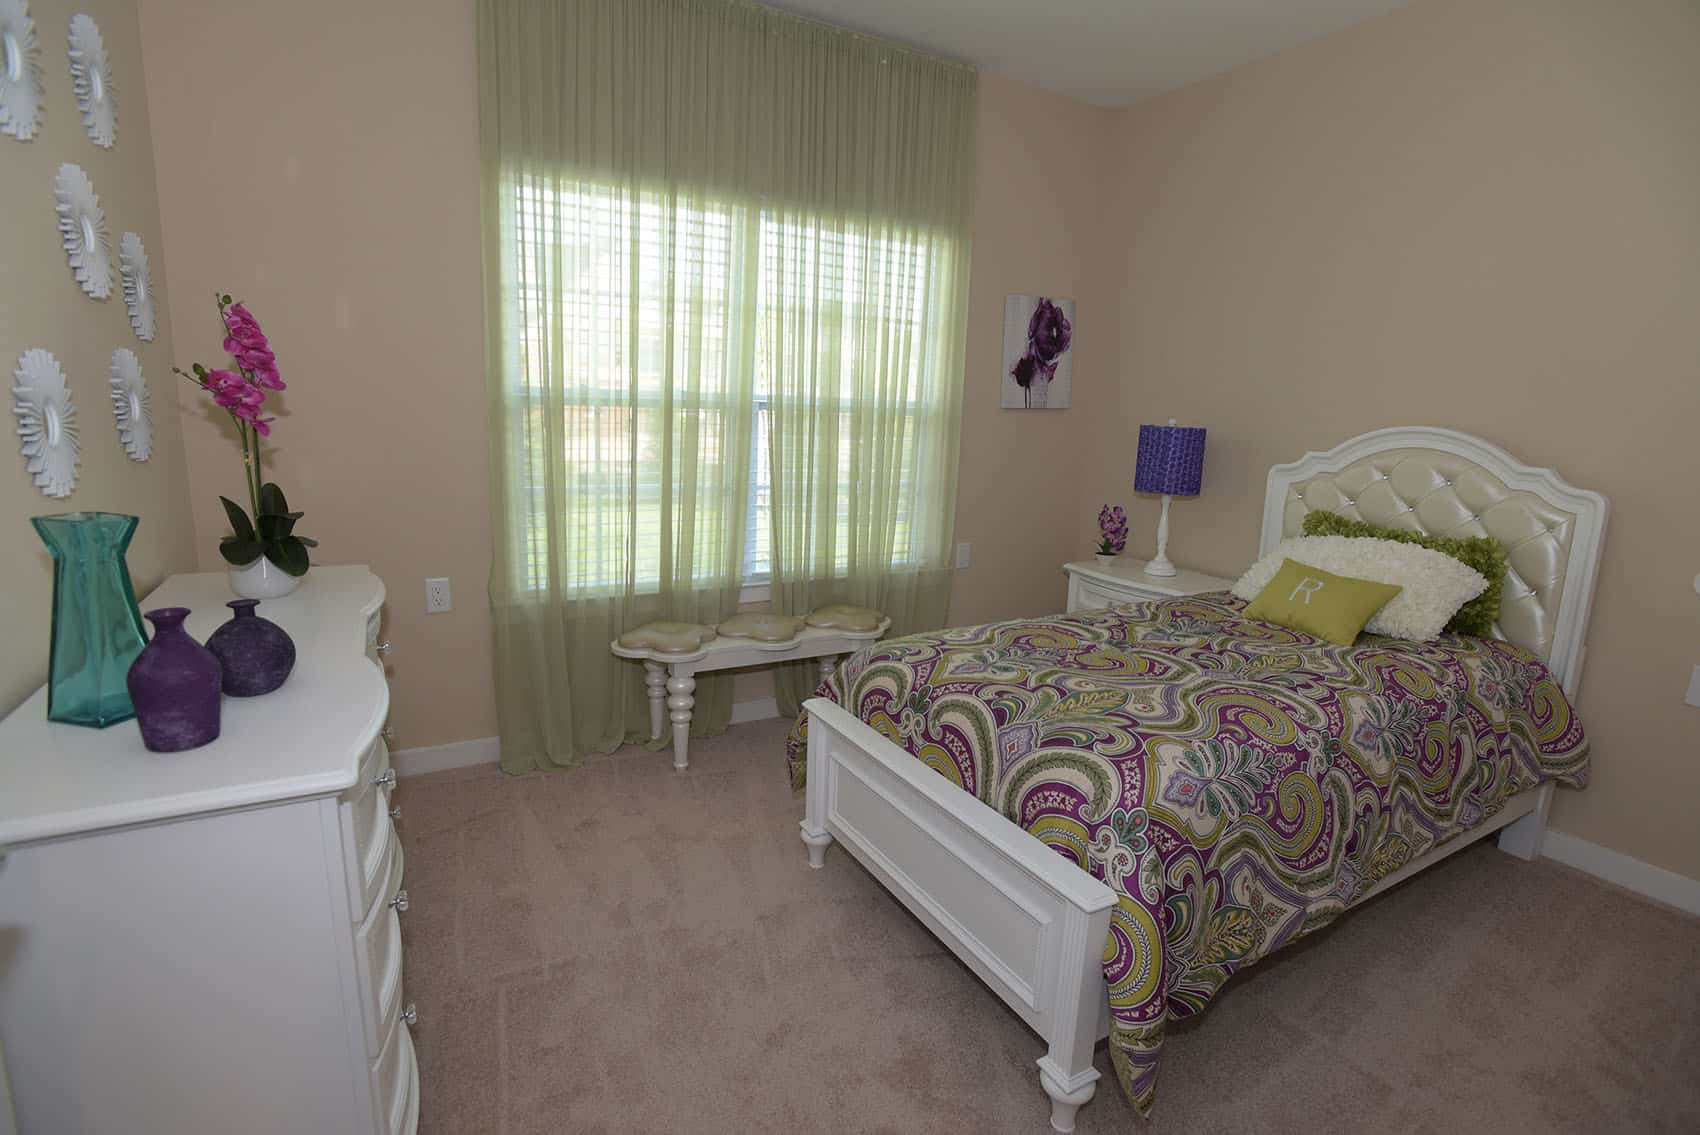 Bedroom at the Gardens at Jackson Twenty-One with carpet flooring and white wooden bed and dresser